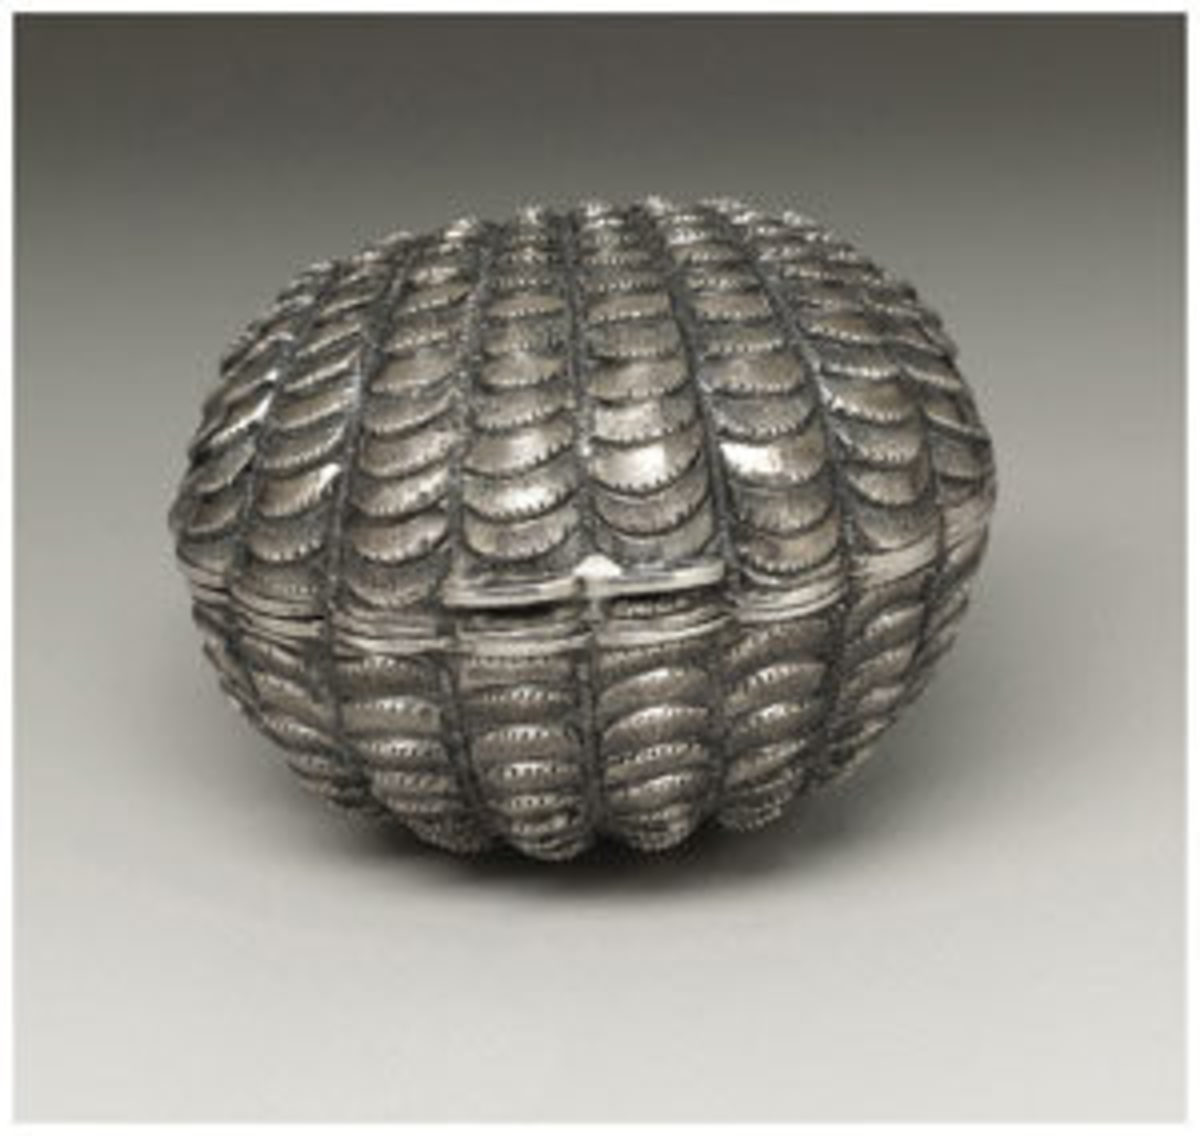 "A Victorian silver and steel nutmeg grater, Hilliard & Thomason, Birmingham, England, 1865-66, of a scalloped cockle shell form with hinged steel grater, 1.62"" l, $2,390. Courtesy of Heritage Auctions"